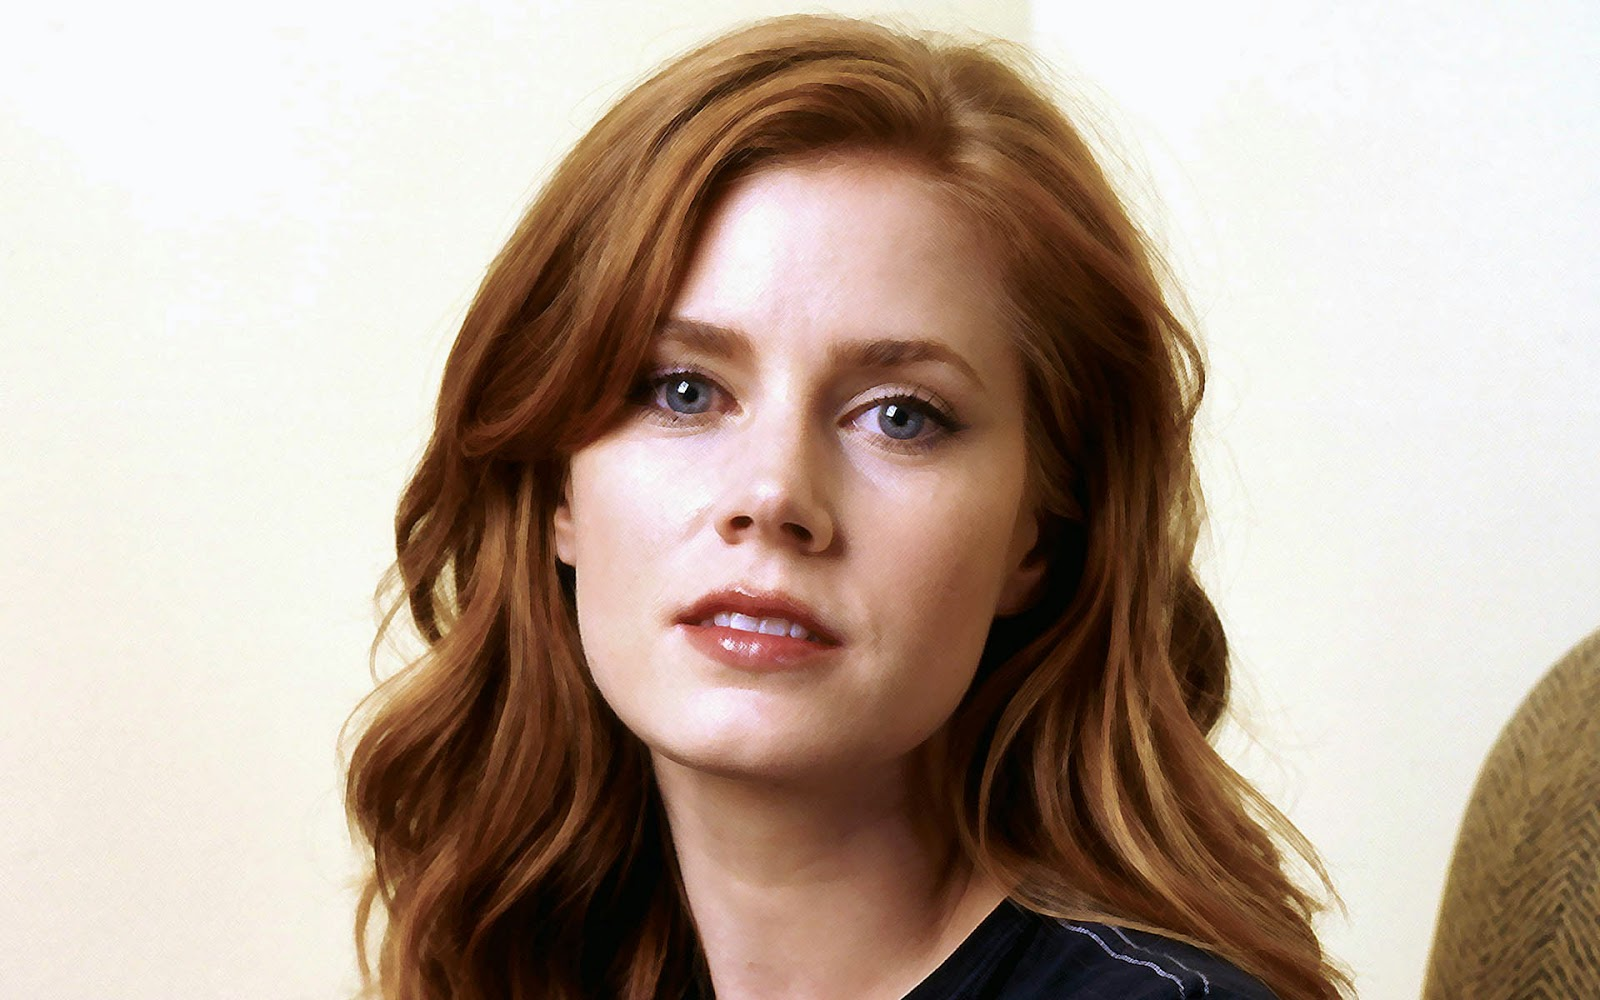 Amy adams cute actress photo of hollywood